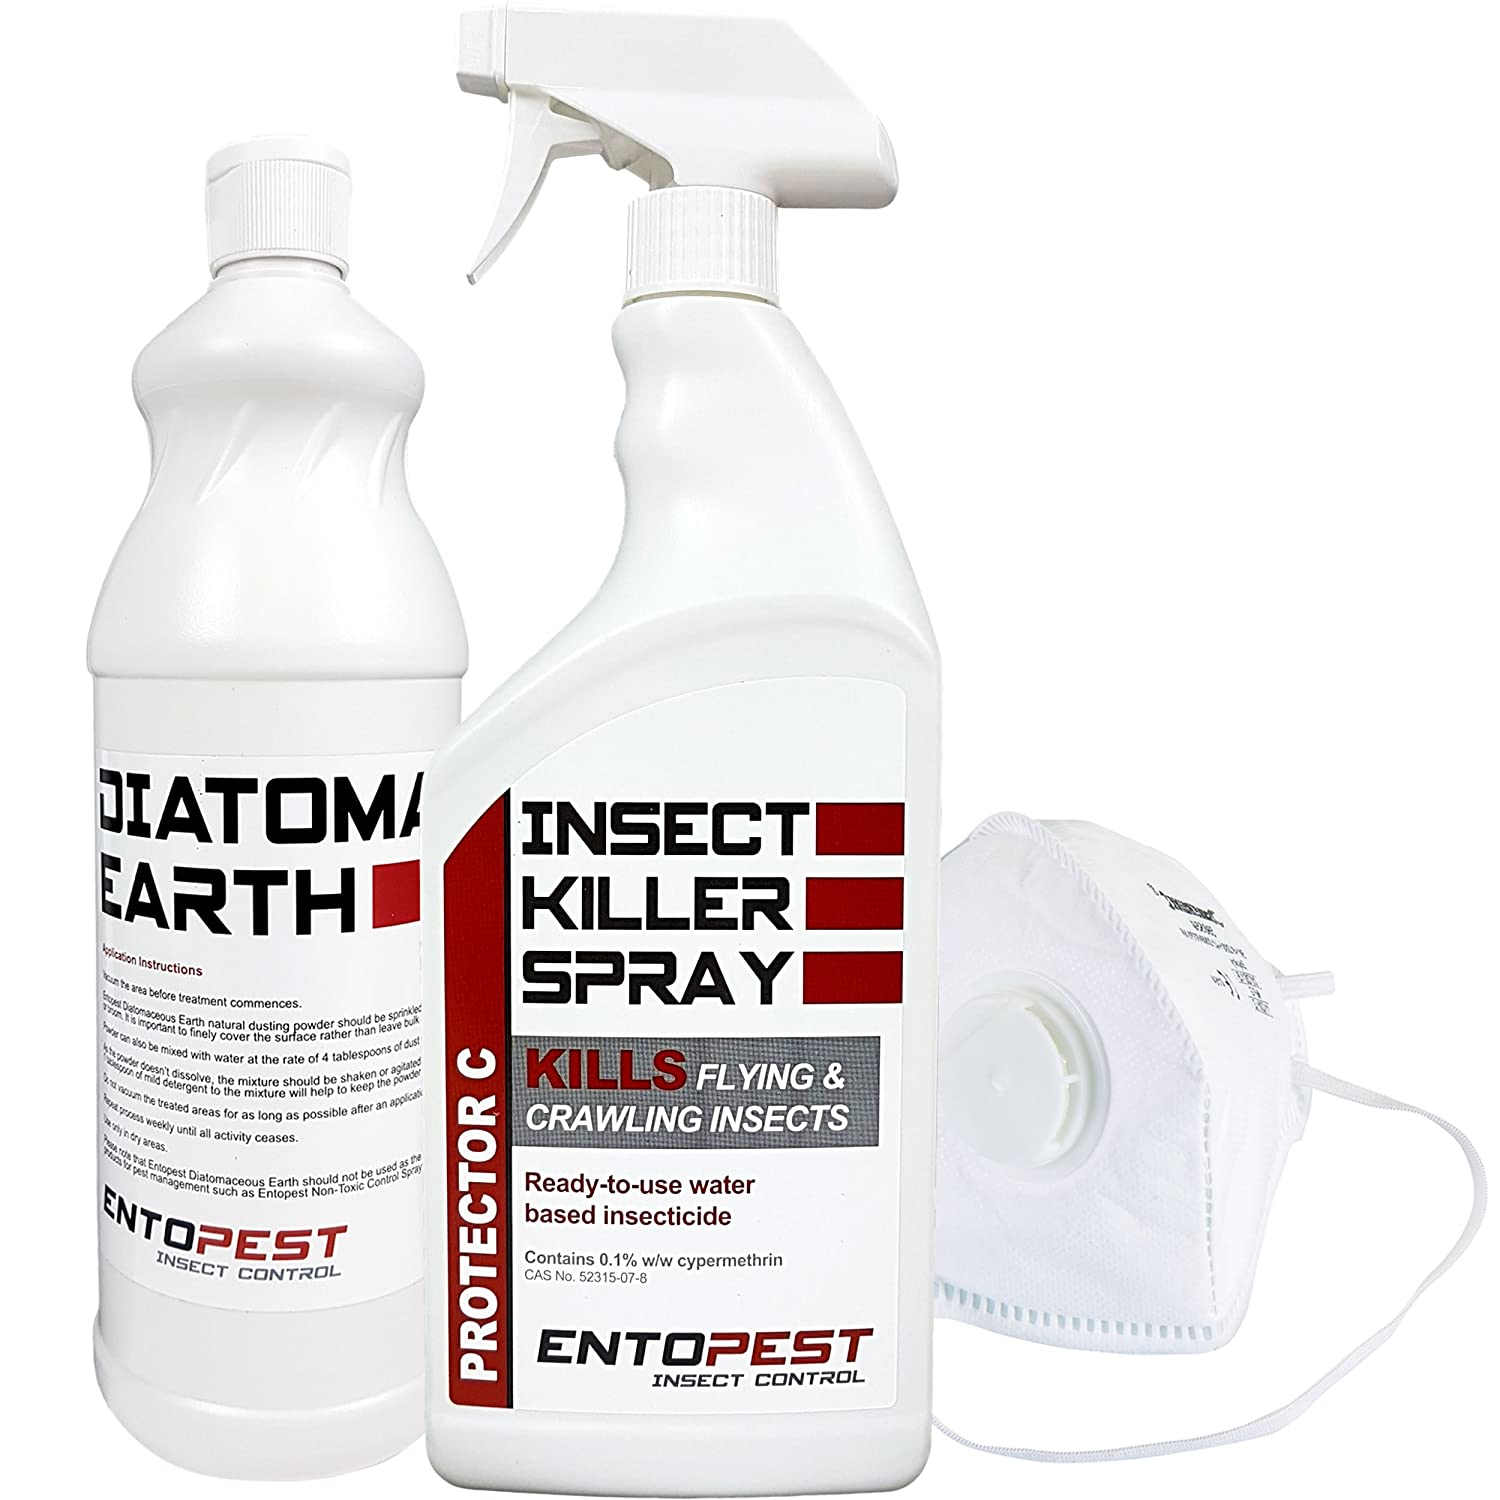 Entopest Silverfish Spray & Powder Treatment Killer Kit - Professional Strength Control Seahaven Limited